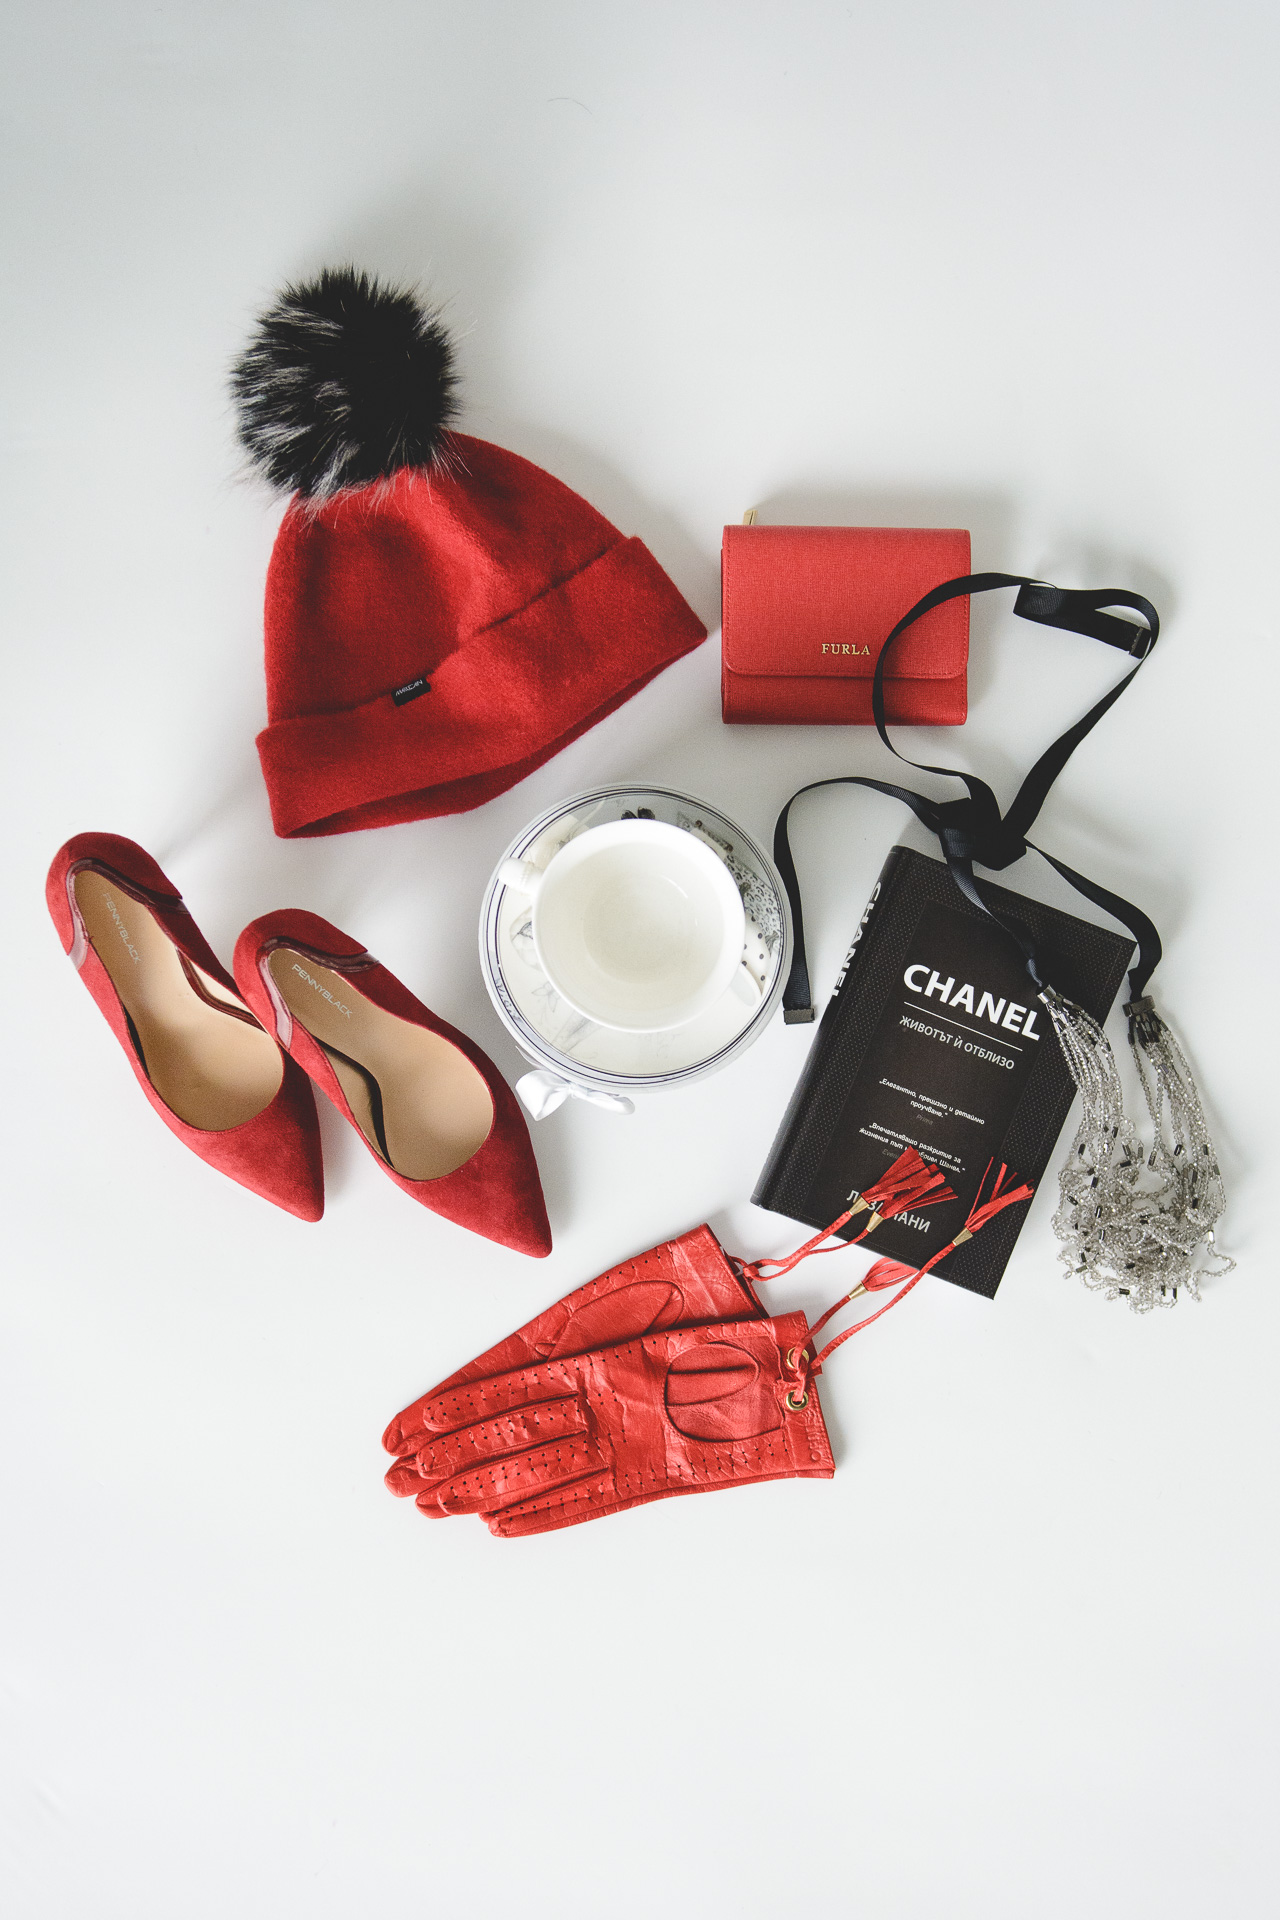 Christmas gift chanel book marella hat liu jo gloves